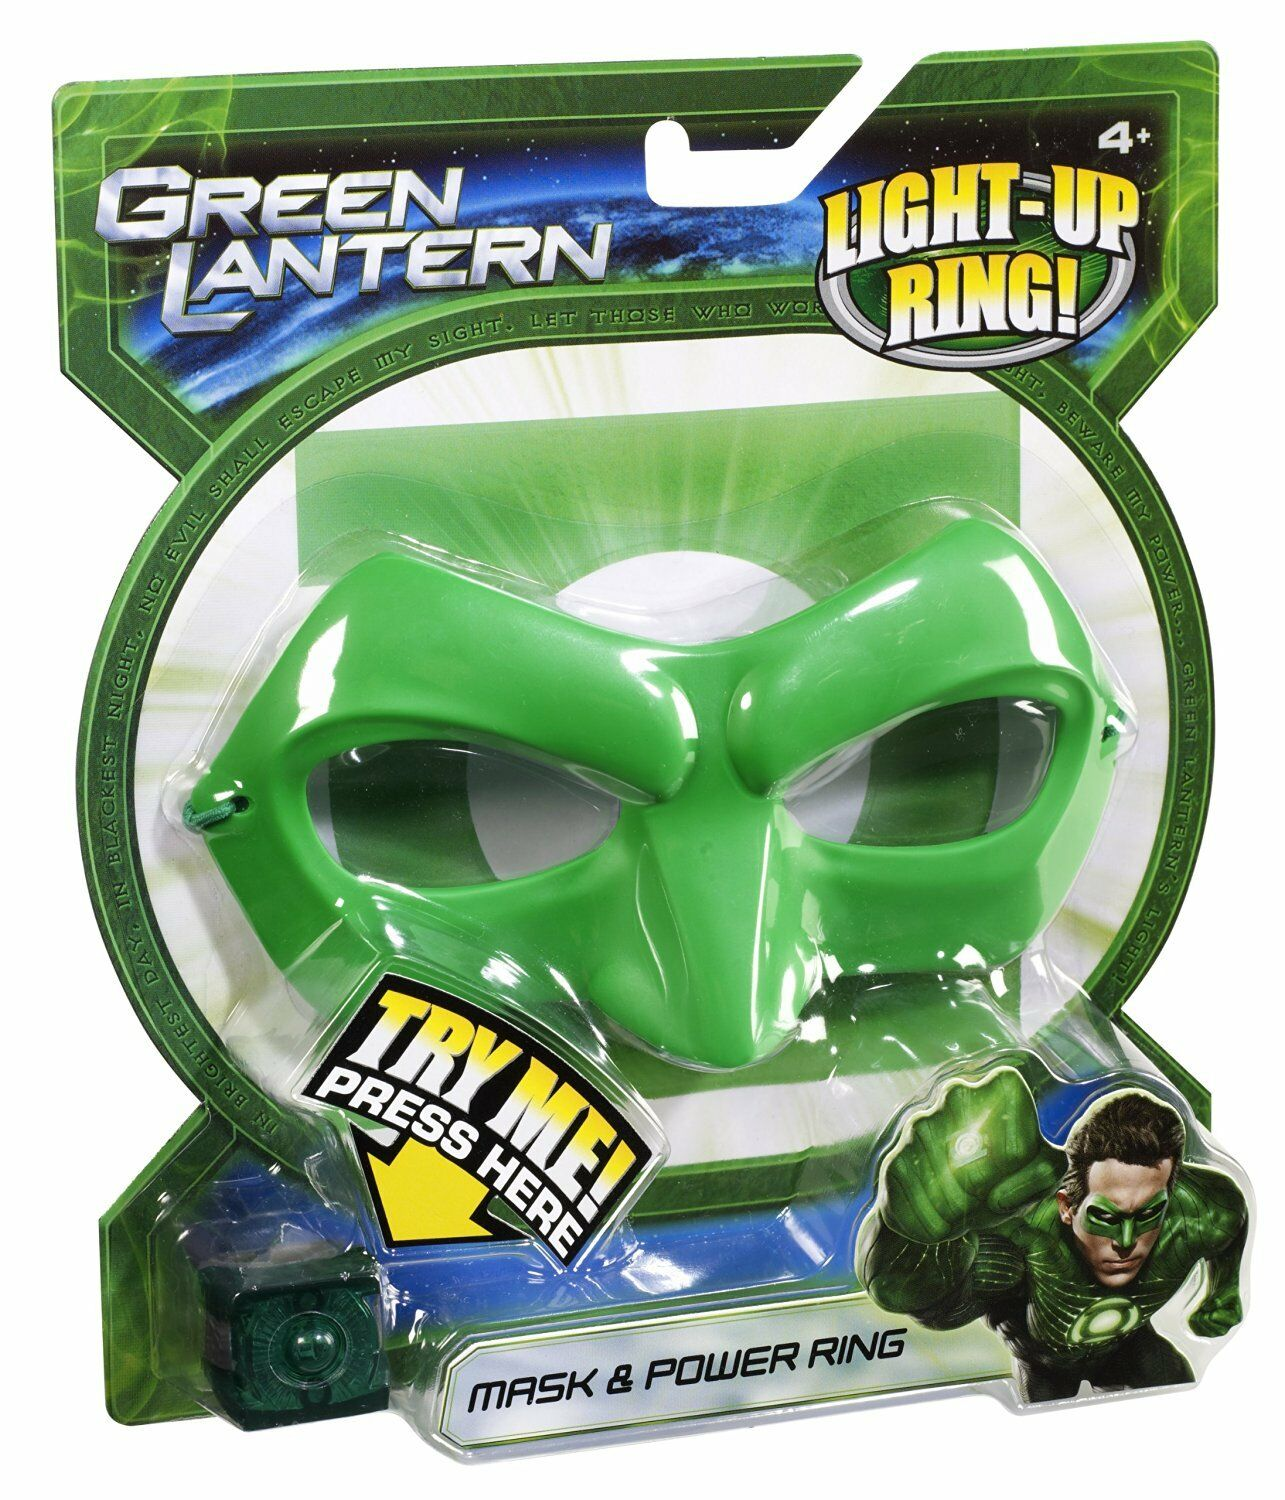 GREEN LANTERN MASK & POWER RING LITES UP 2011 NU